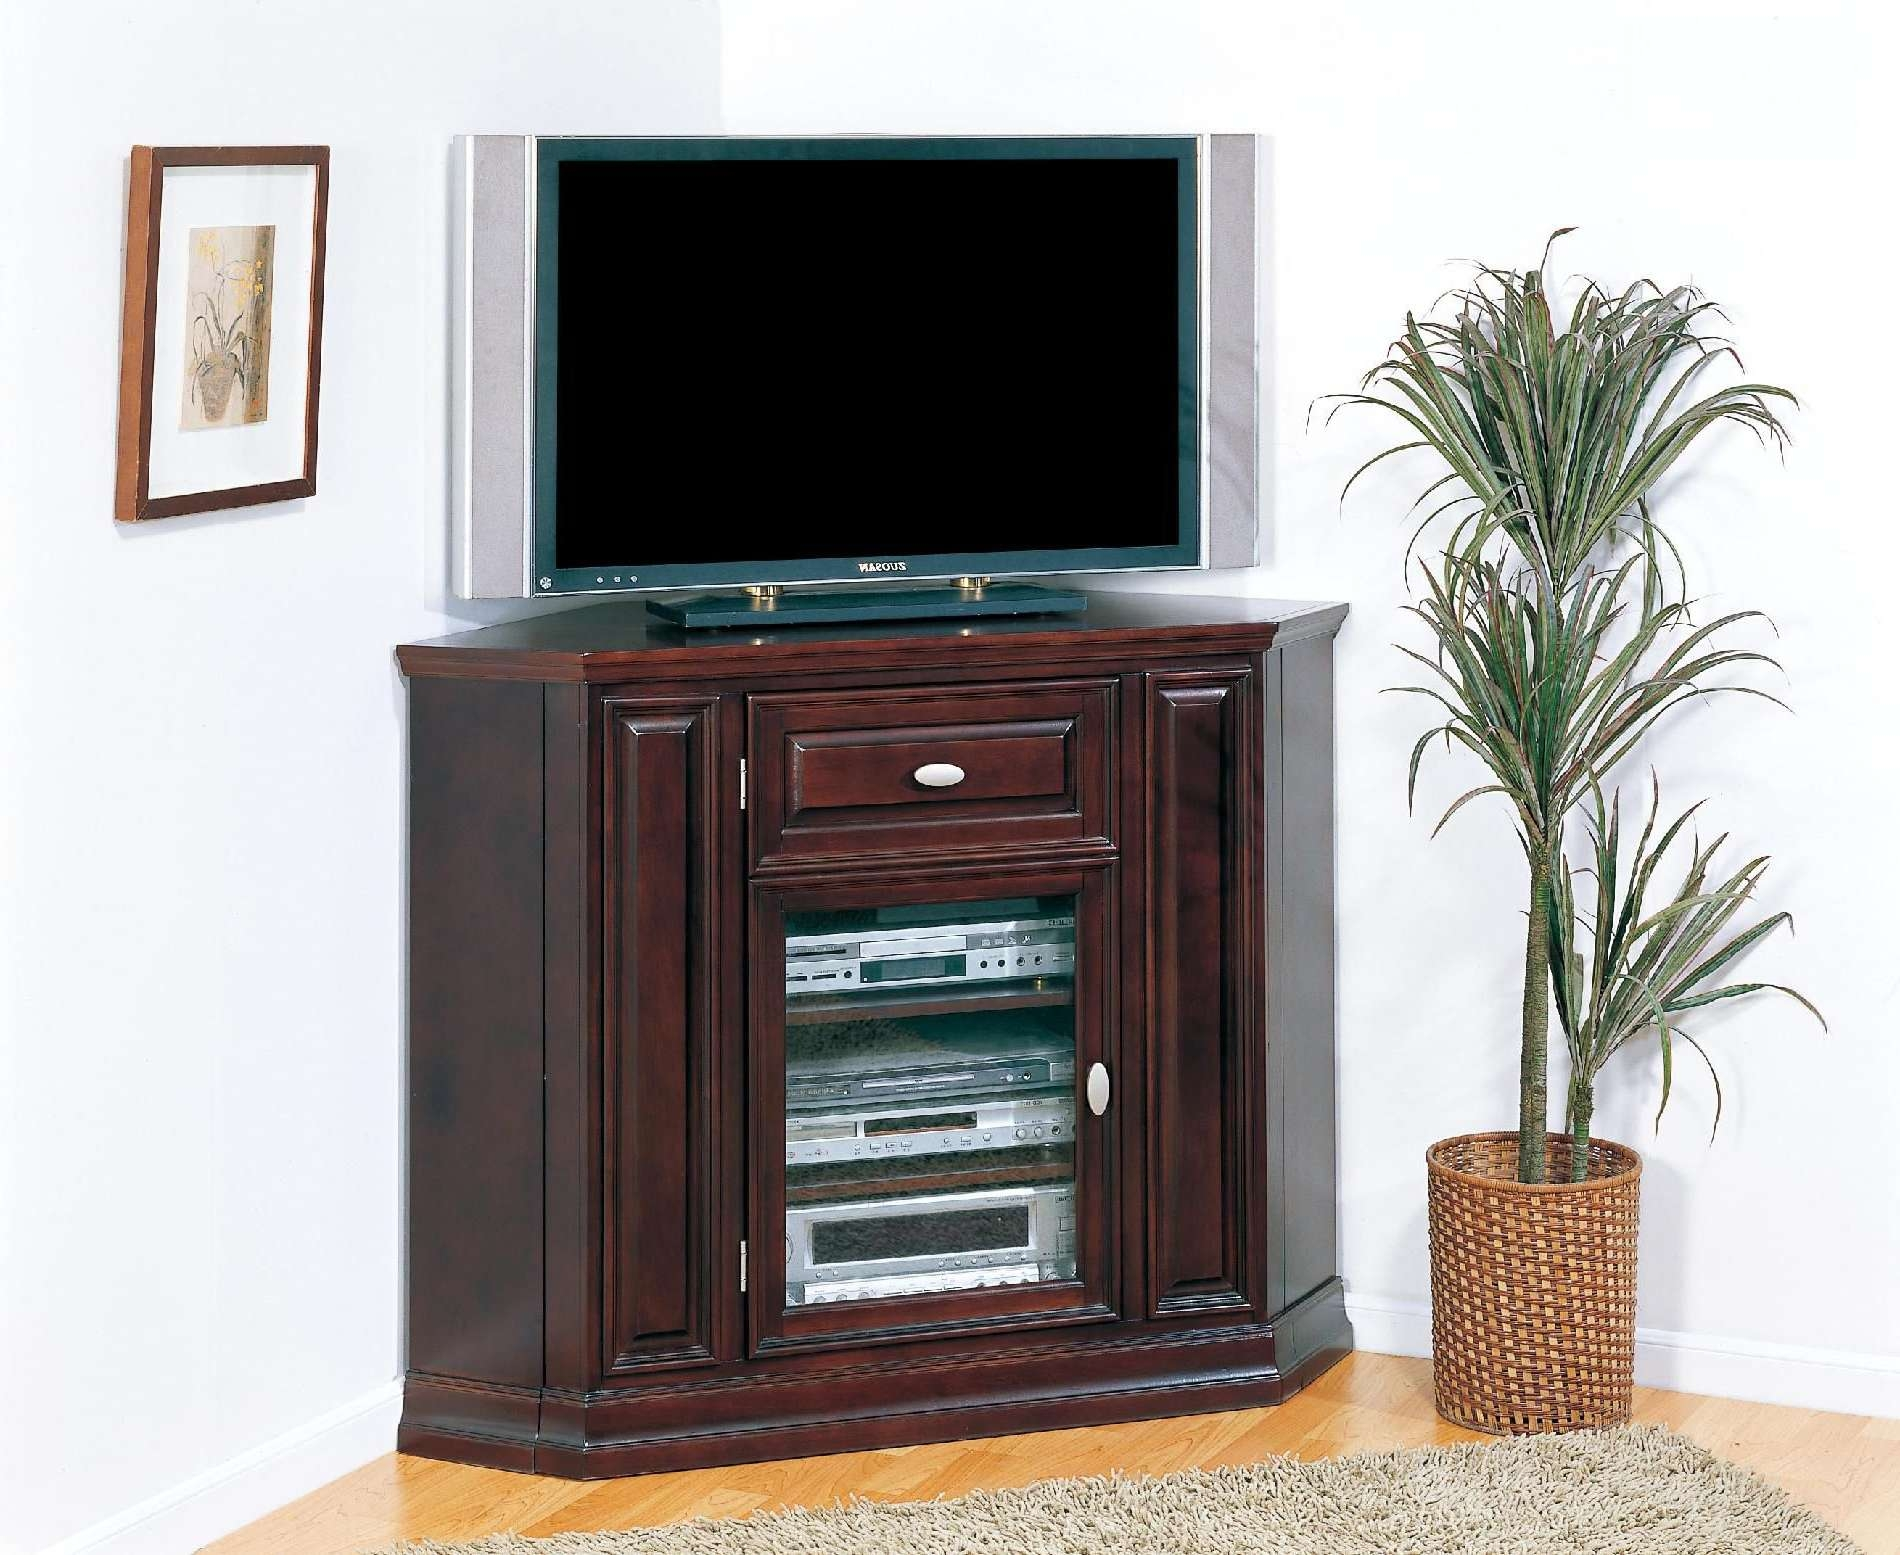 Tall Corner Tv Cabinet With Glass And Wood Doors Plus Drawer Of Intended For Corner Tv Stands With Drawers (View 12 of 15)